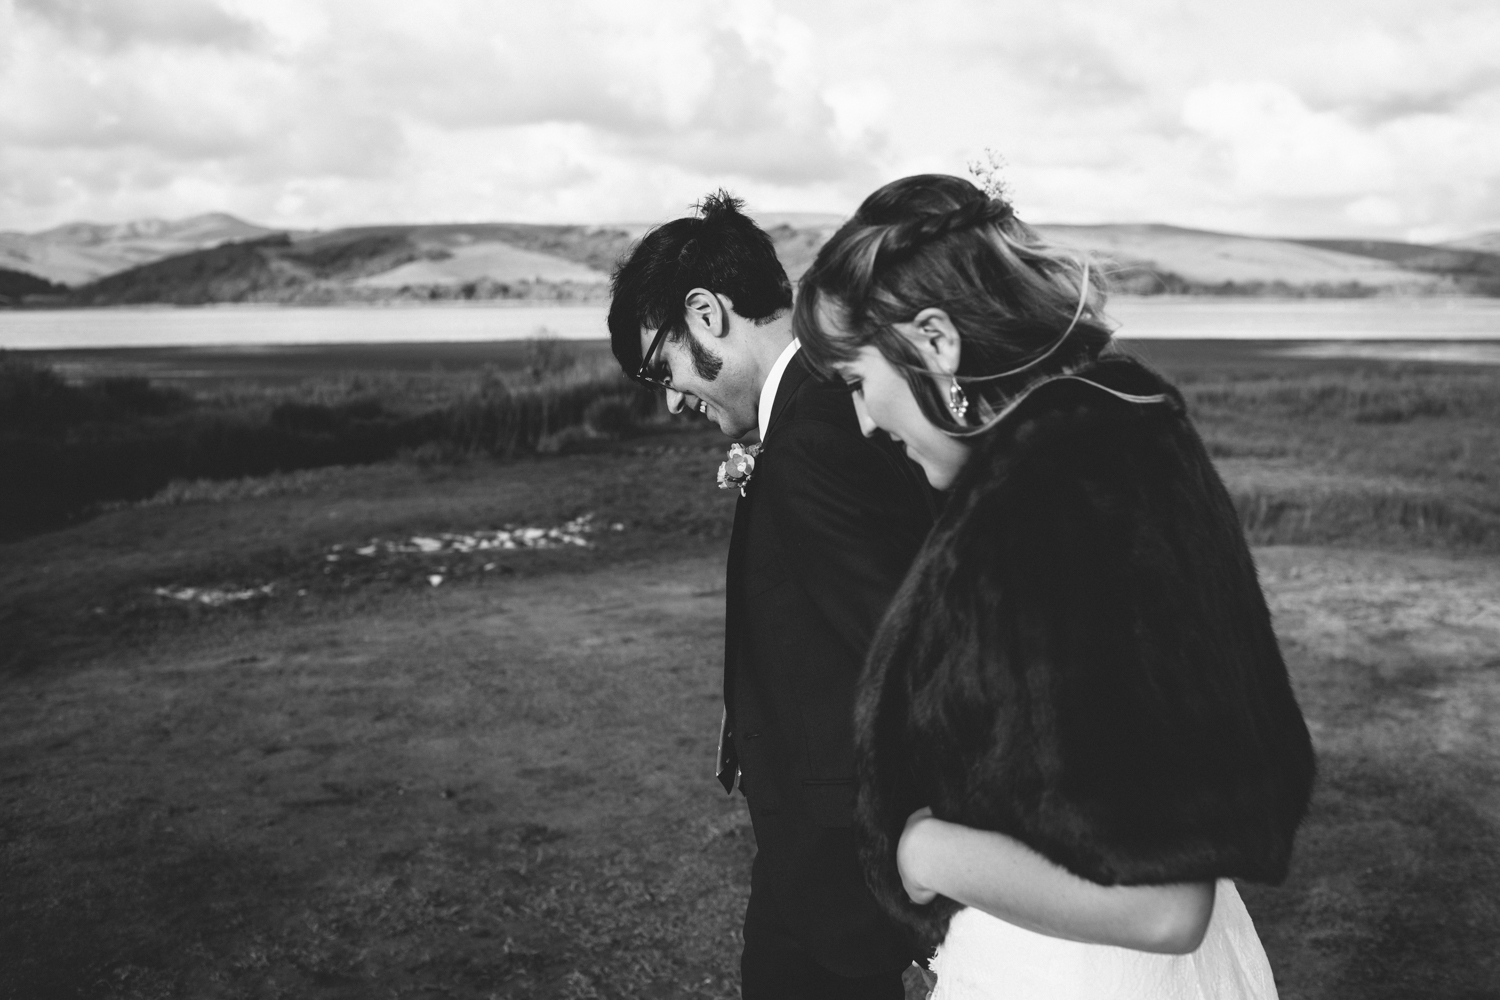 Point Reyes Inverness Wedding Photographer Rachelle Derouin-65.jpg